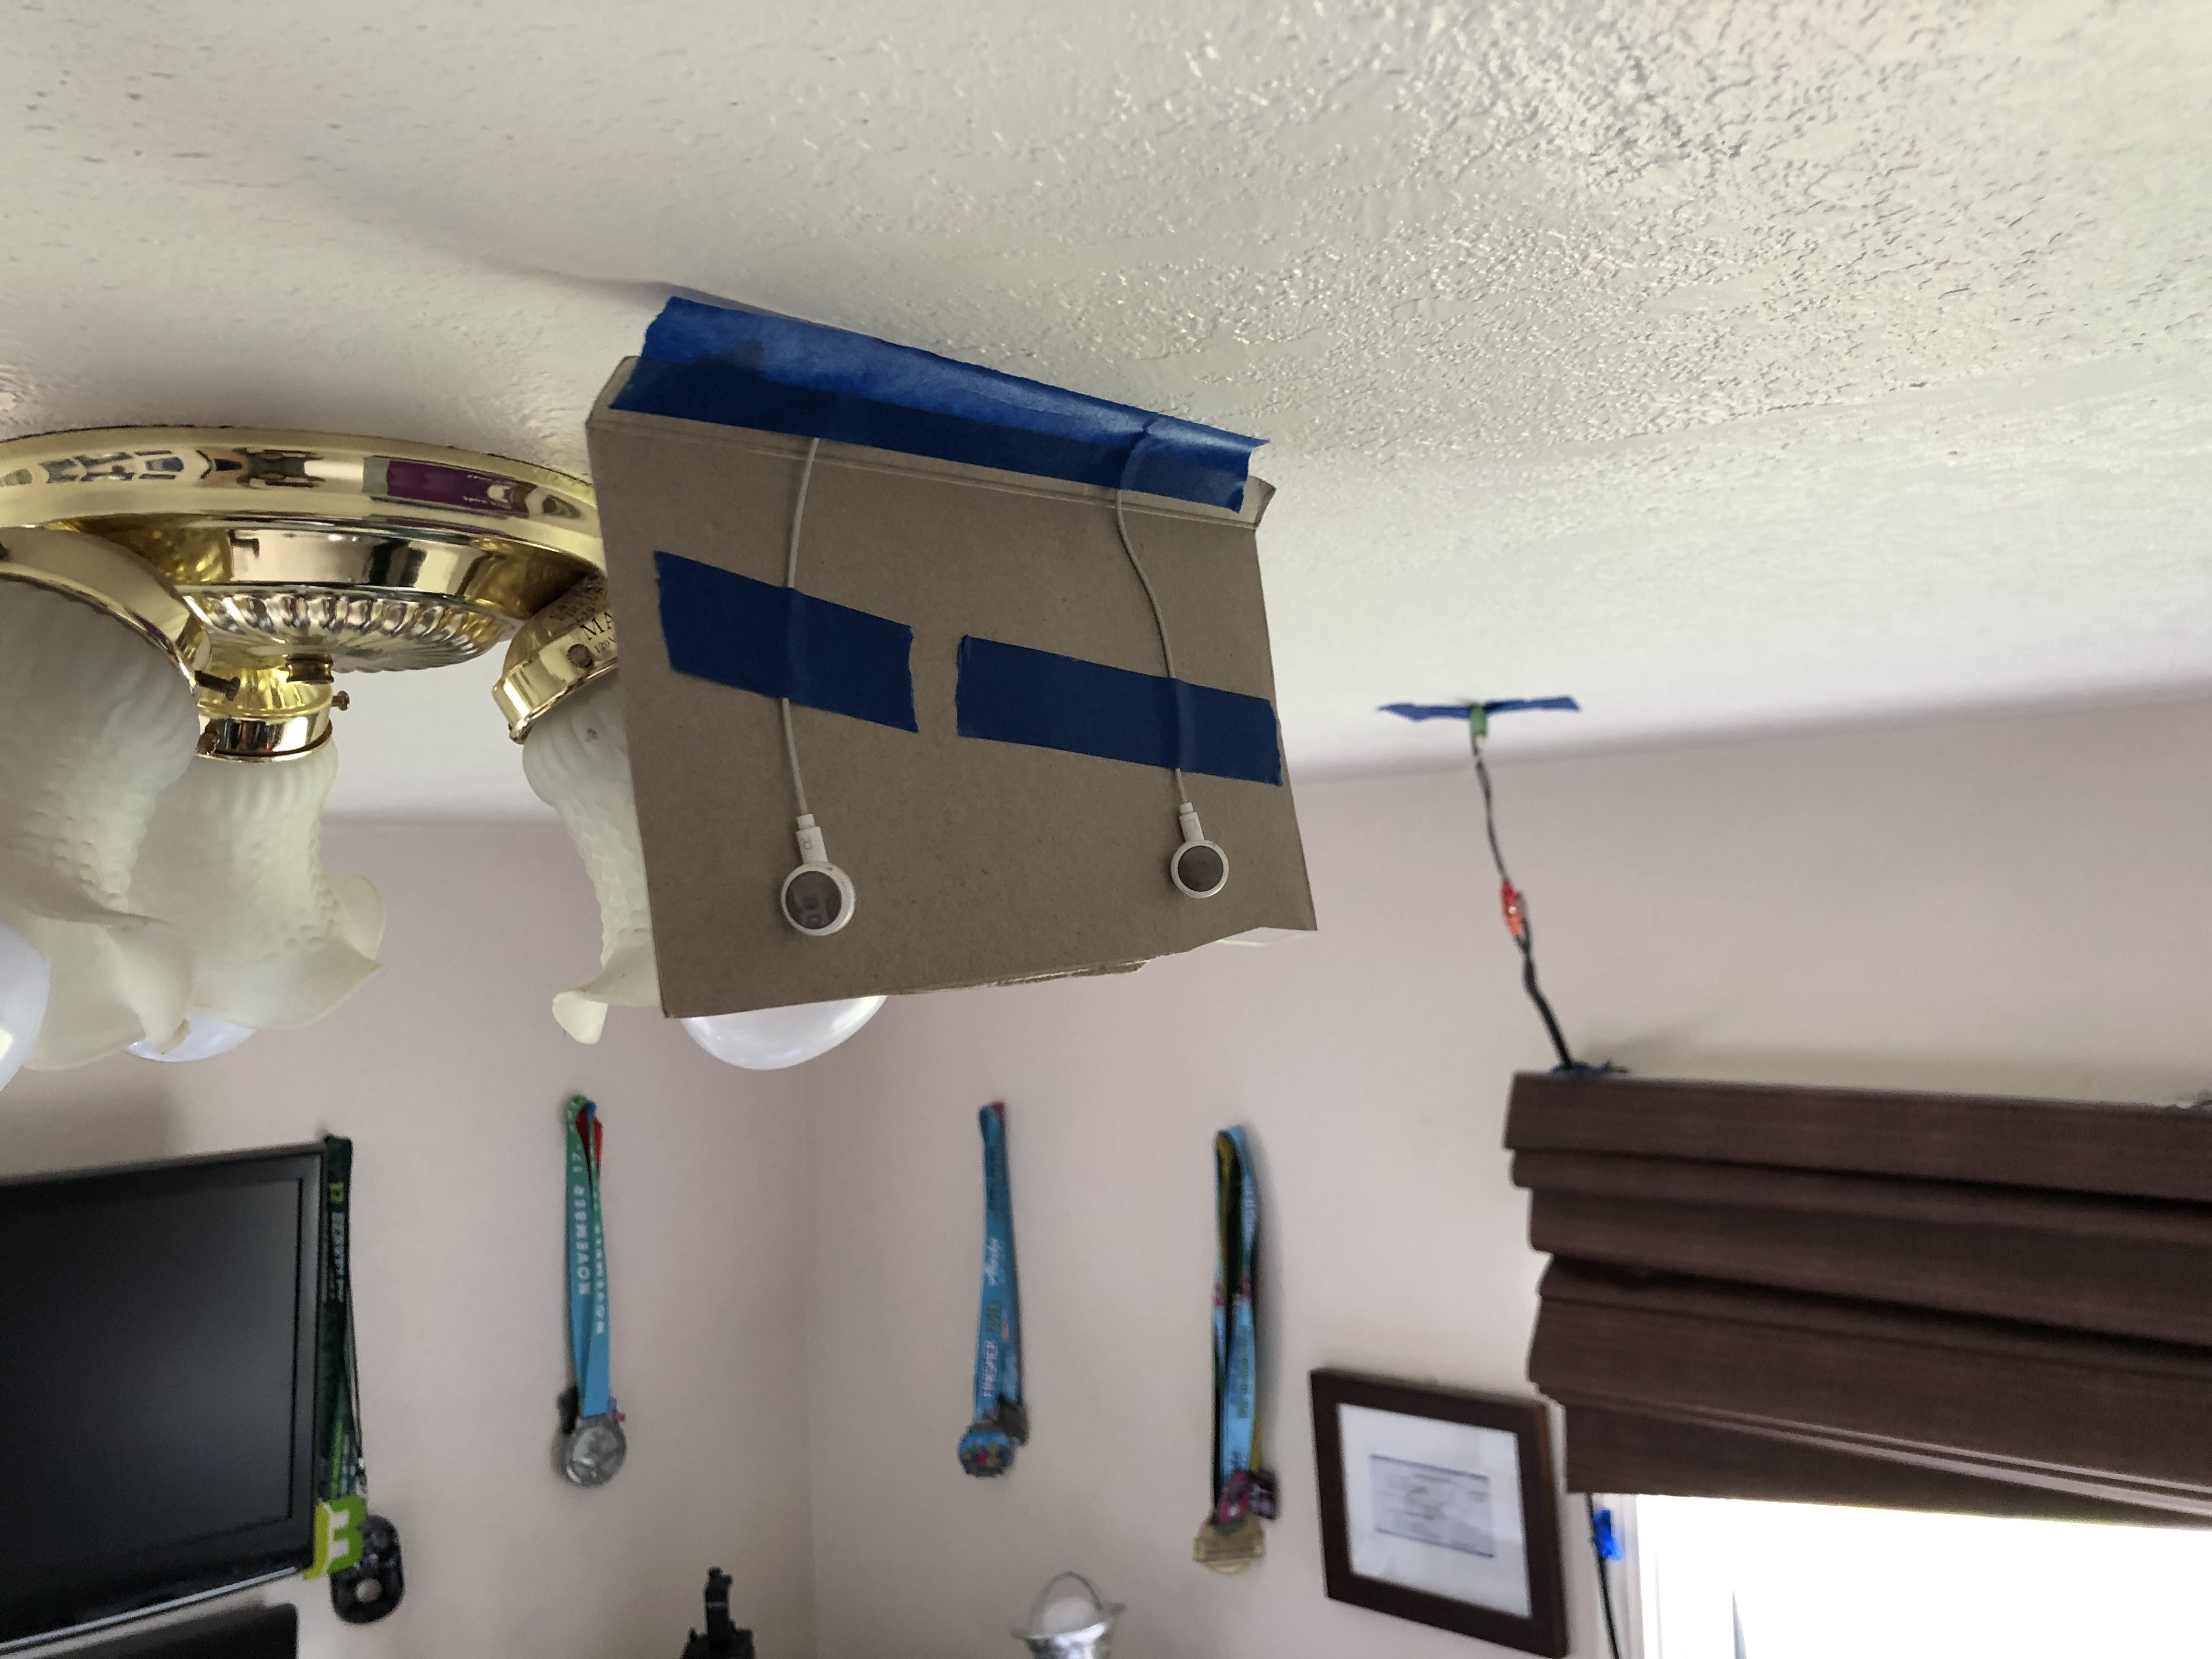 Earbuds hanging from the ceiling.